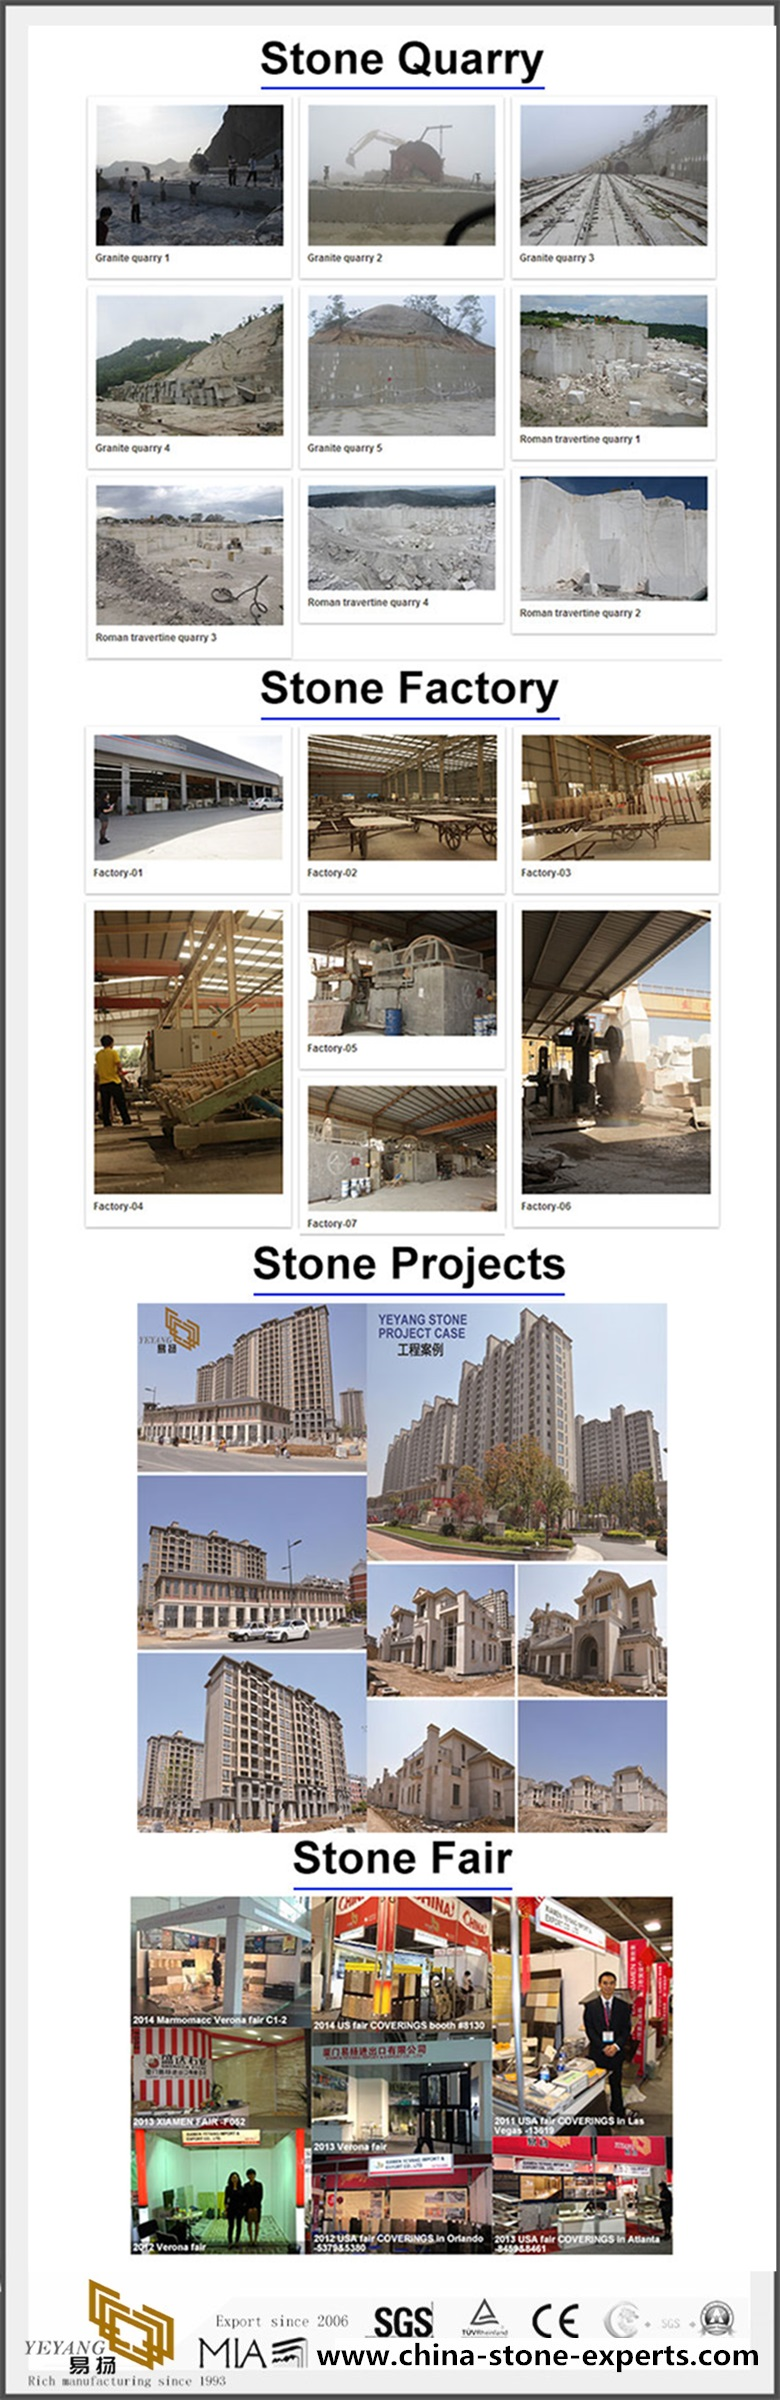 02 Yeyang Quarry+factory+project+fair